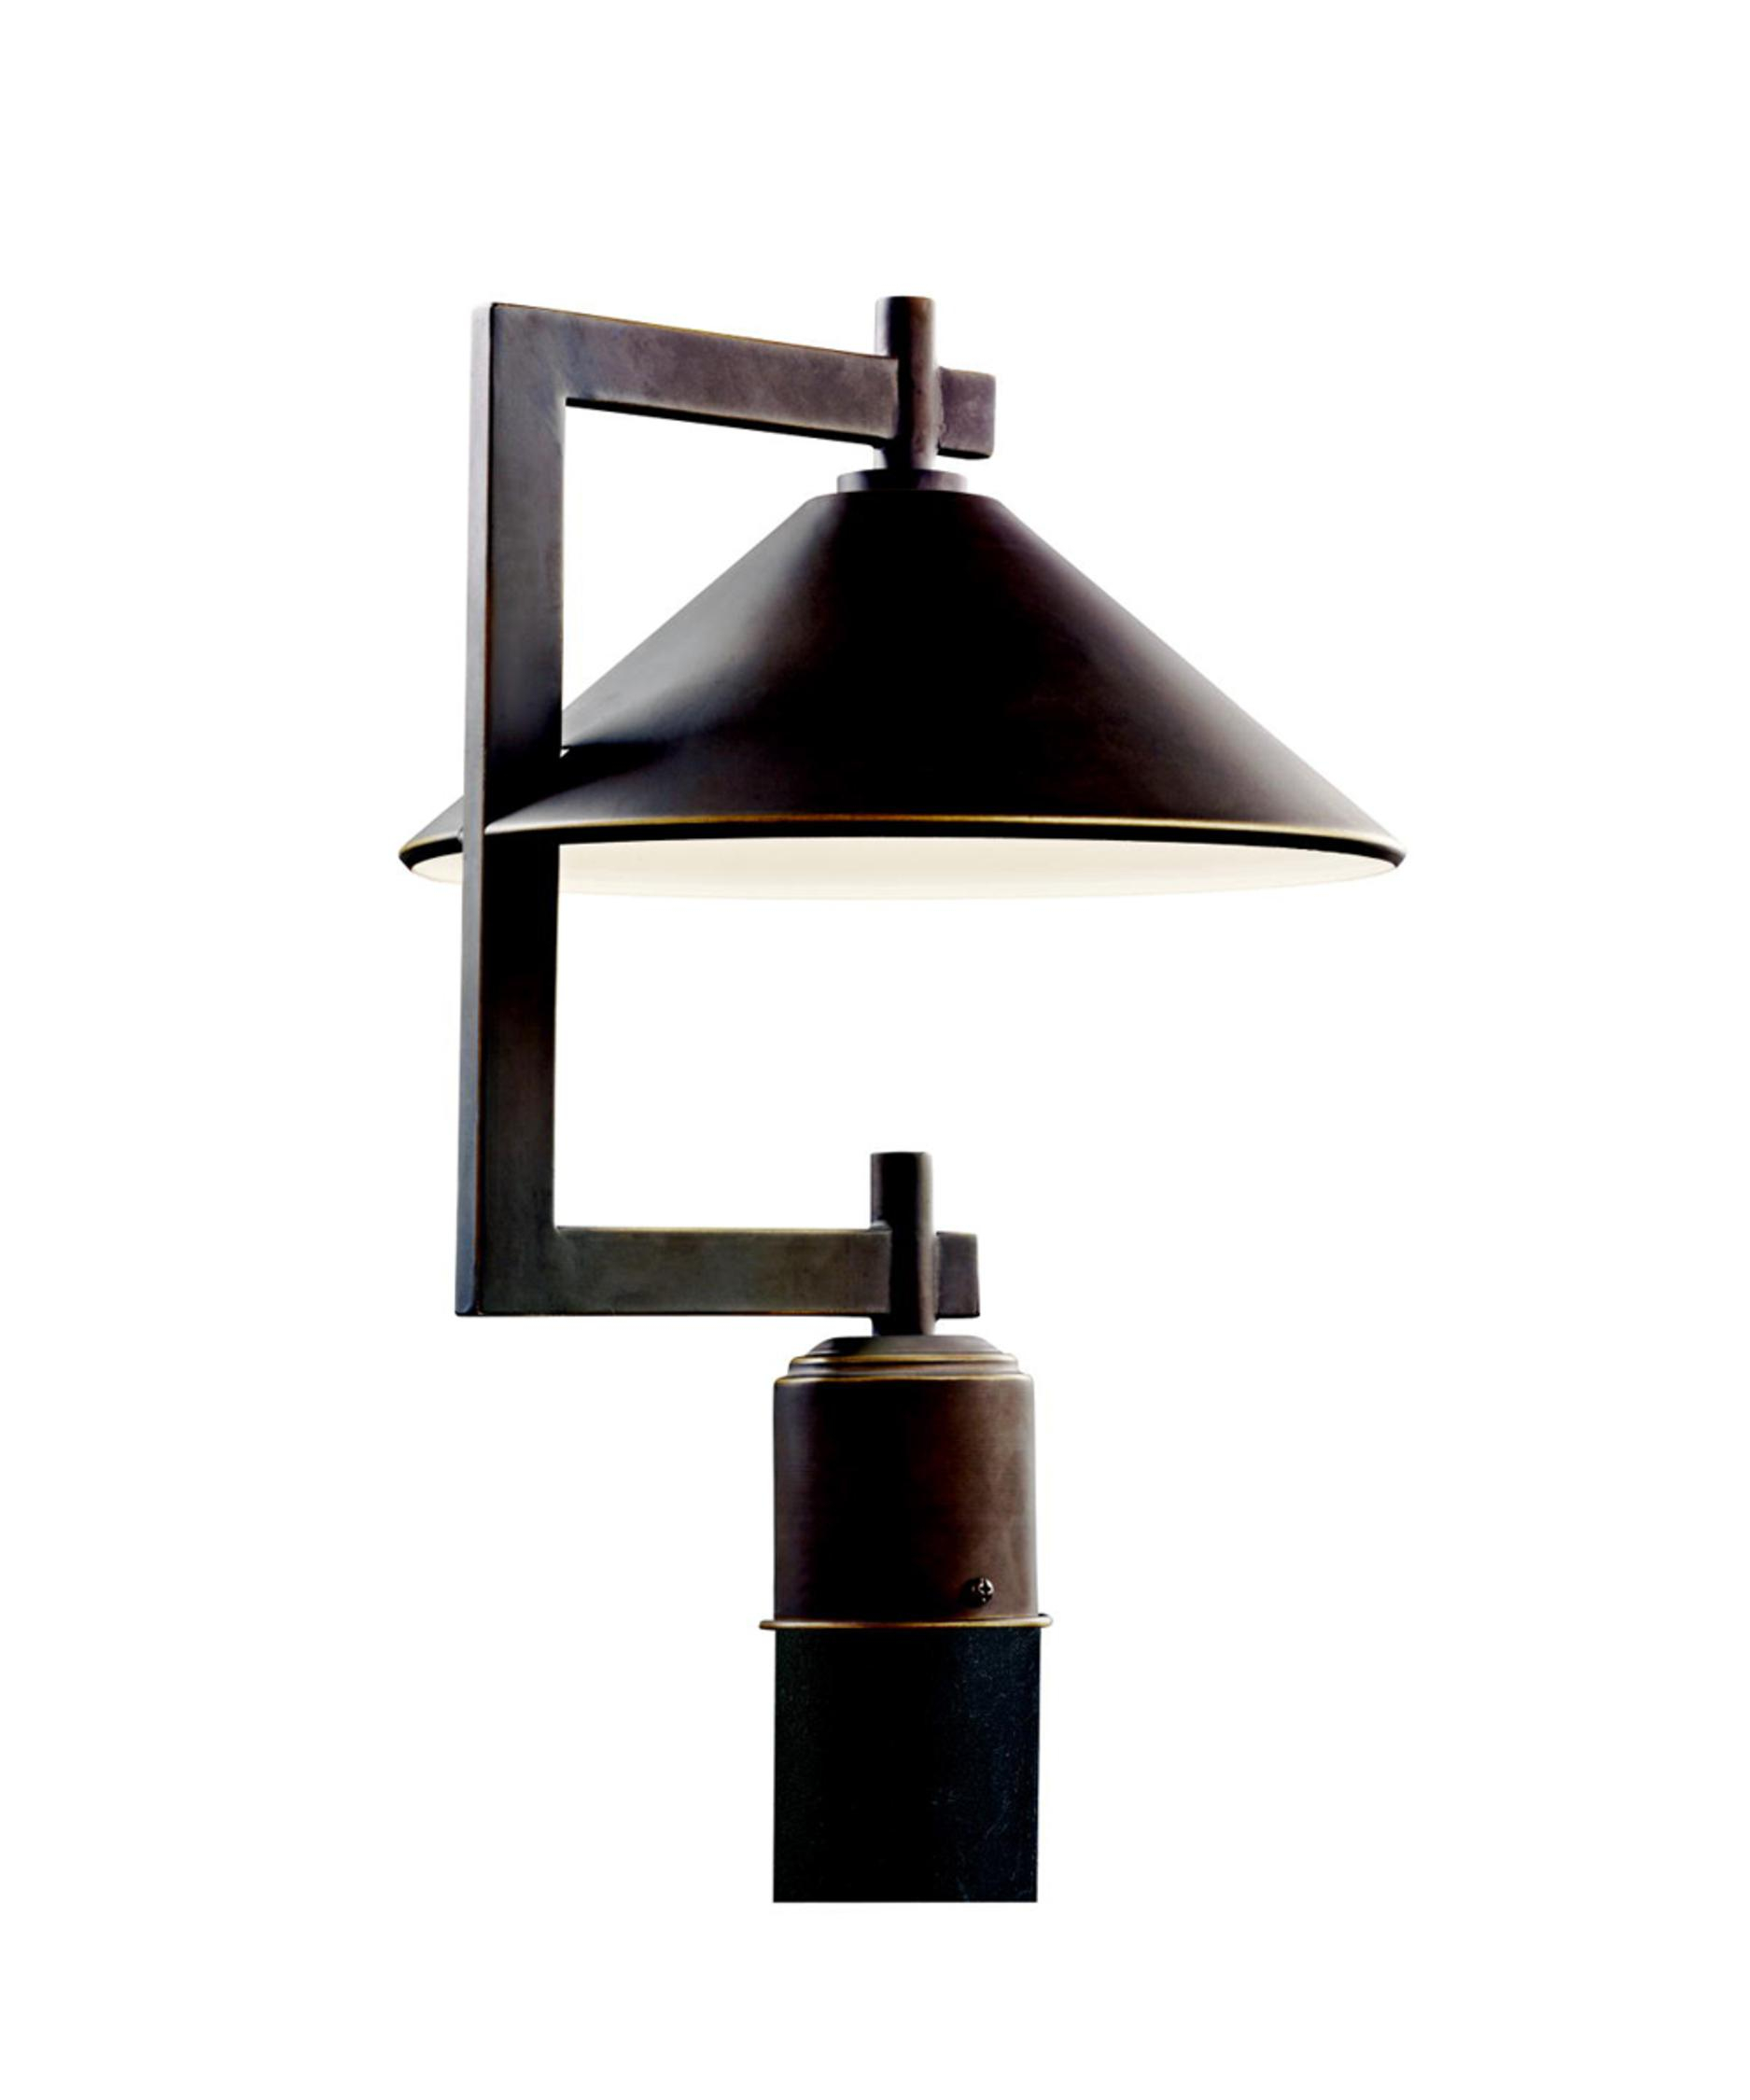 Kichler 49063 Ripley 12 Inch Wide 1 Light Outdoor Post Lamp regarding dimensions 1875 X 2250